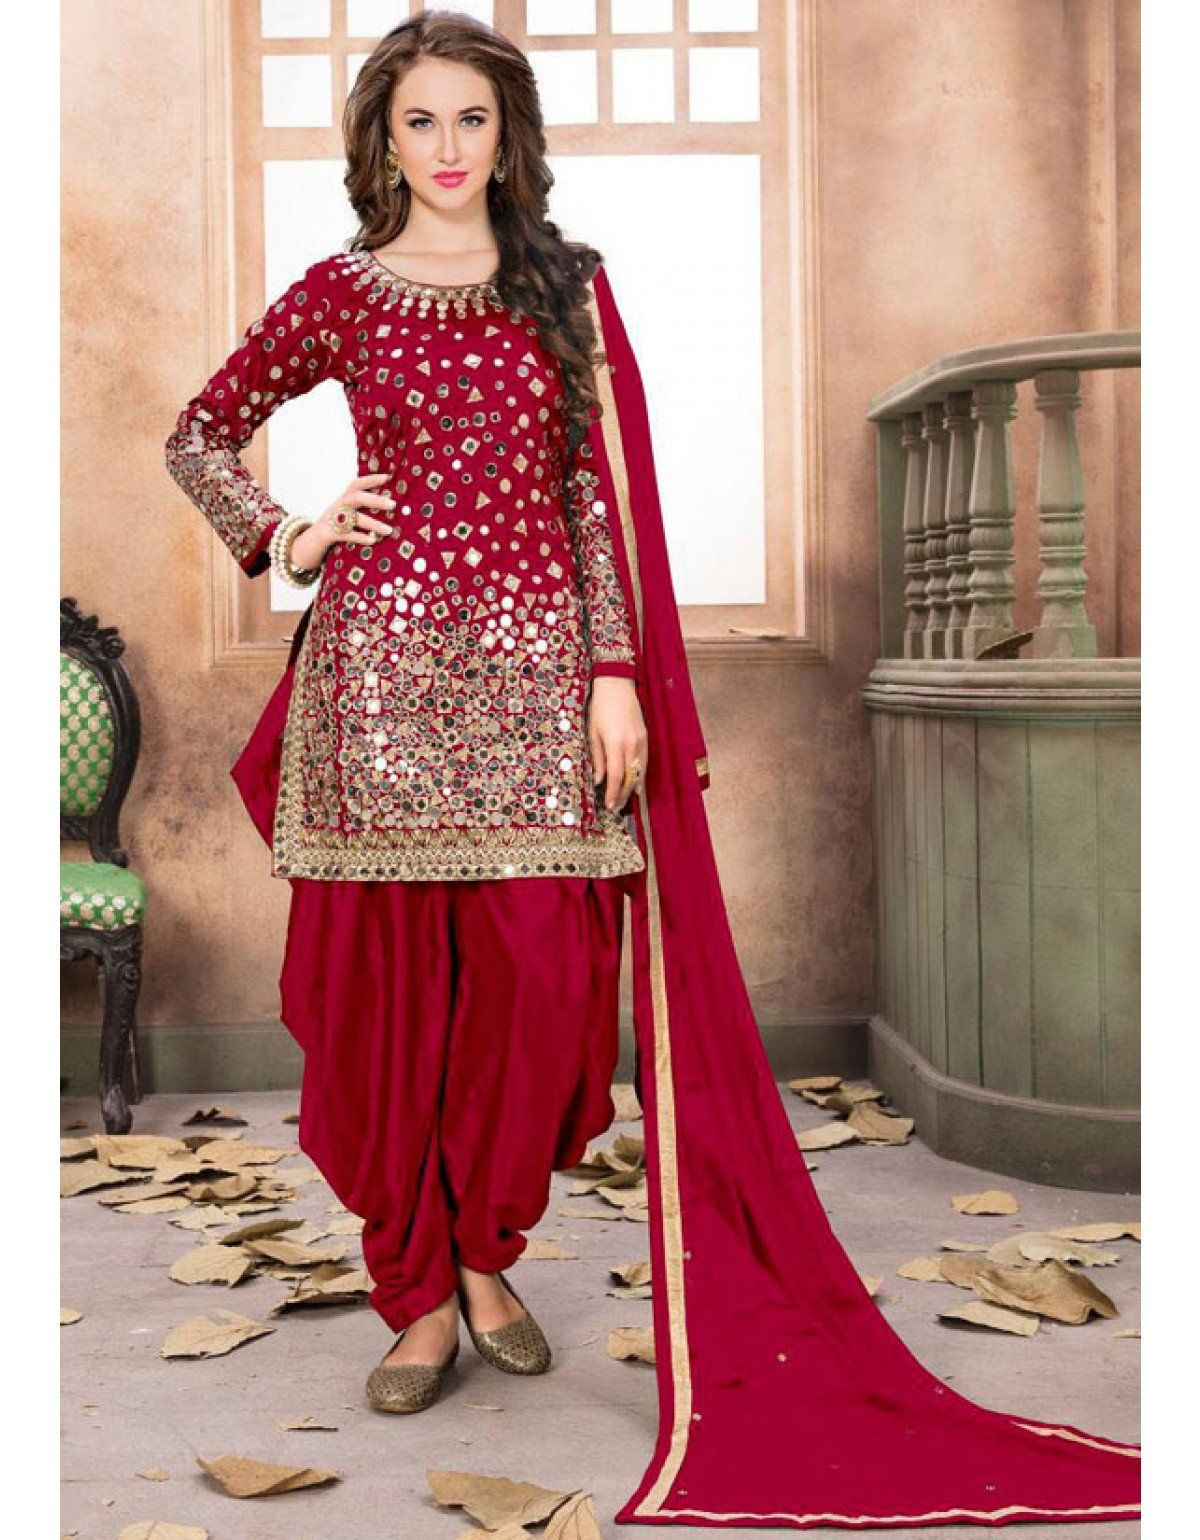 1efce53dfb Cherry Red Mirror Work Patiala Suit in 2019 | Mom and daughter ...